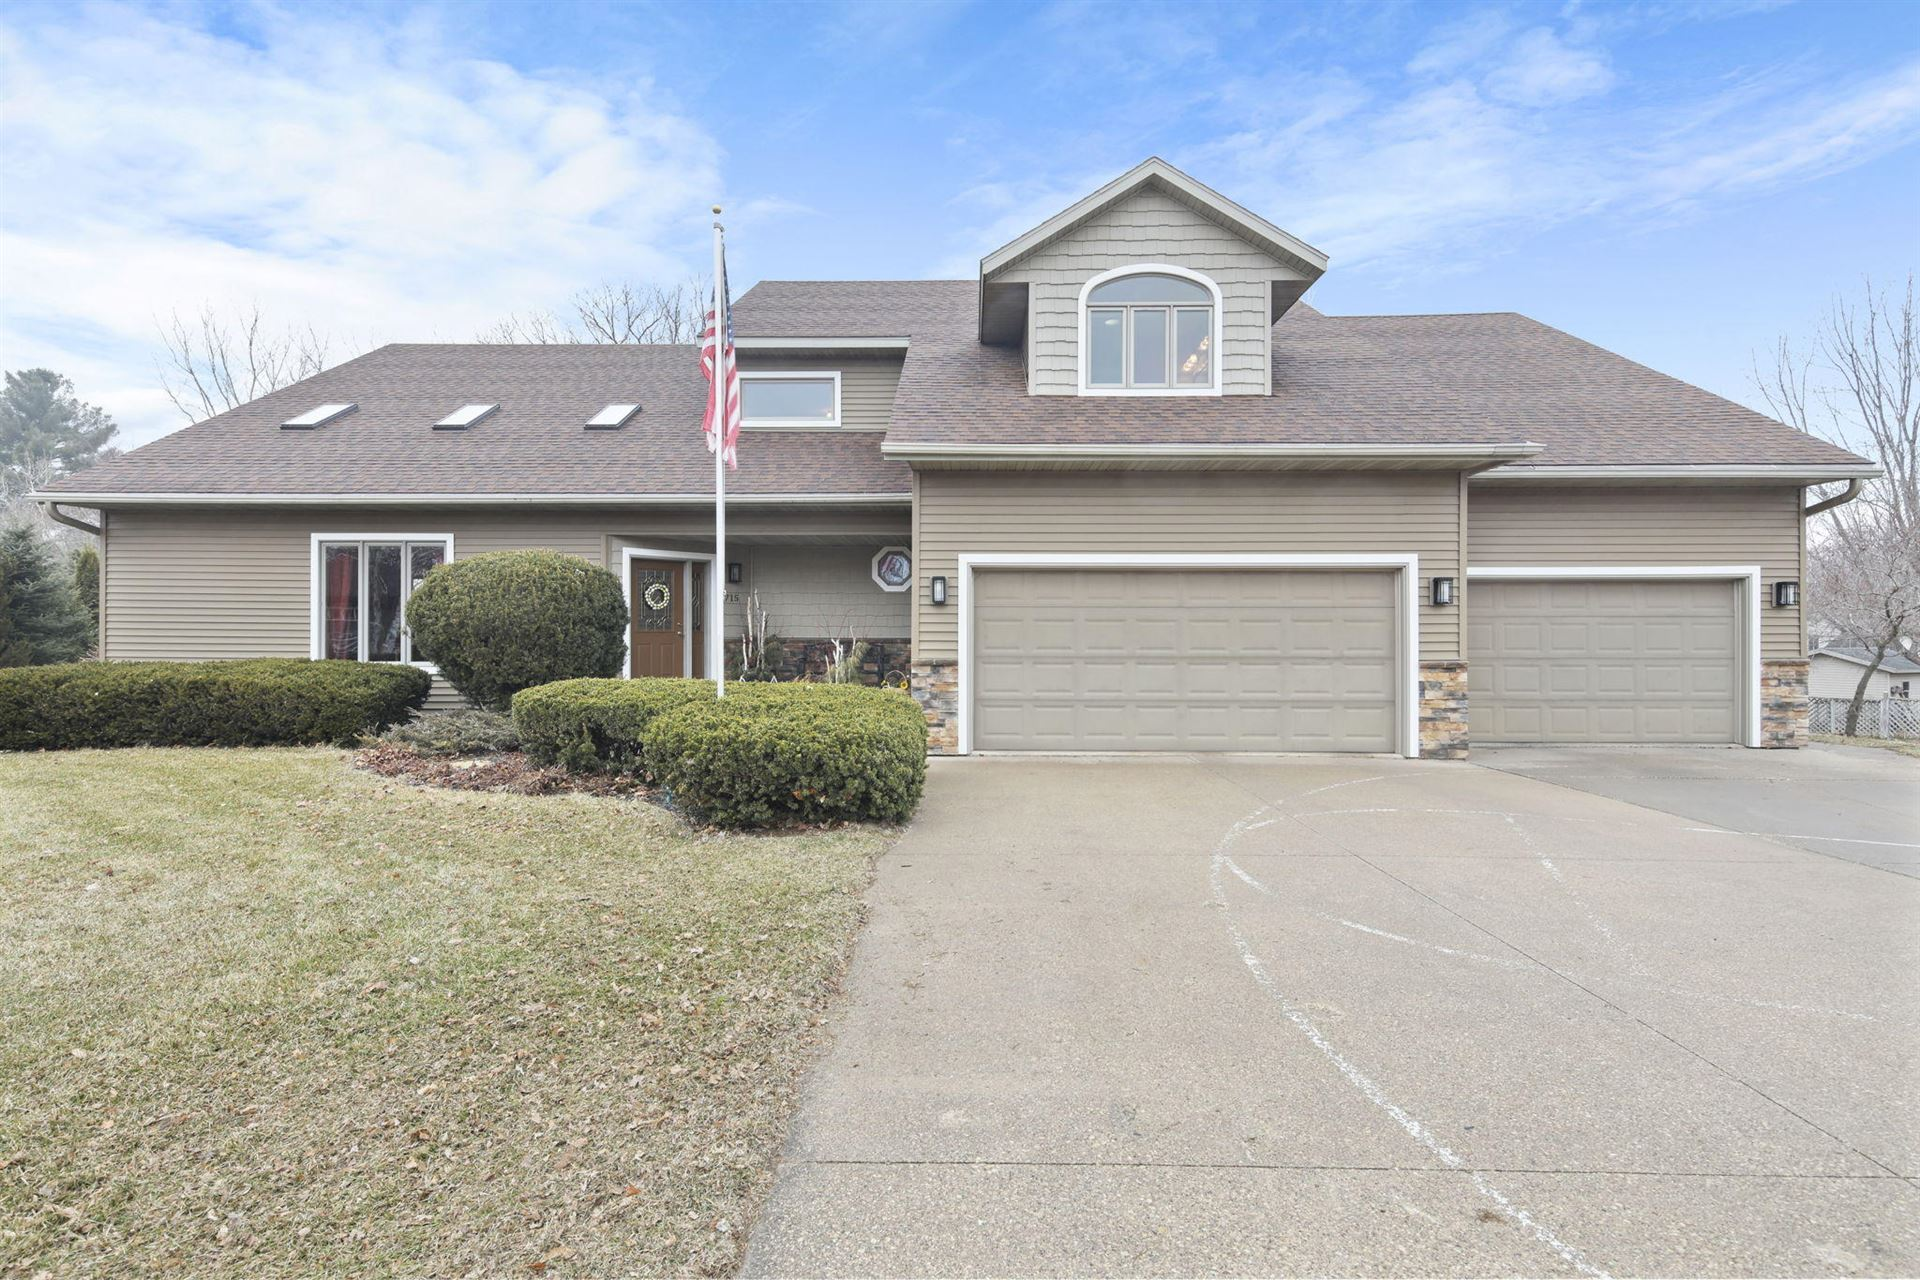 715 Lee Dr, West Salem, WI 54669 - MLS#: 1682272